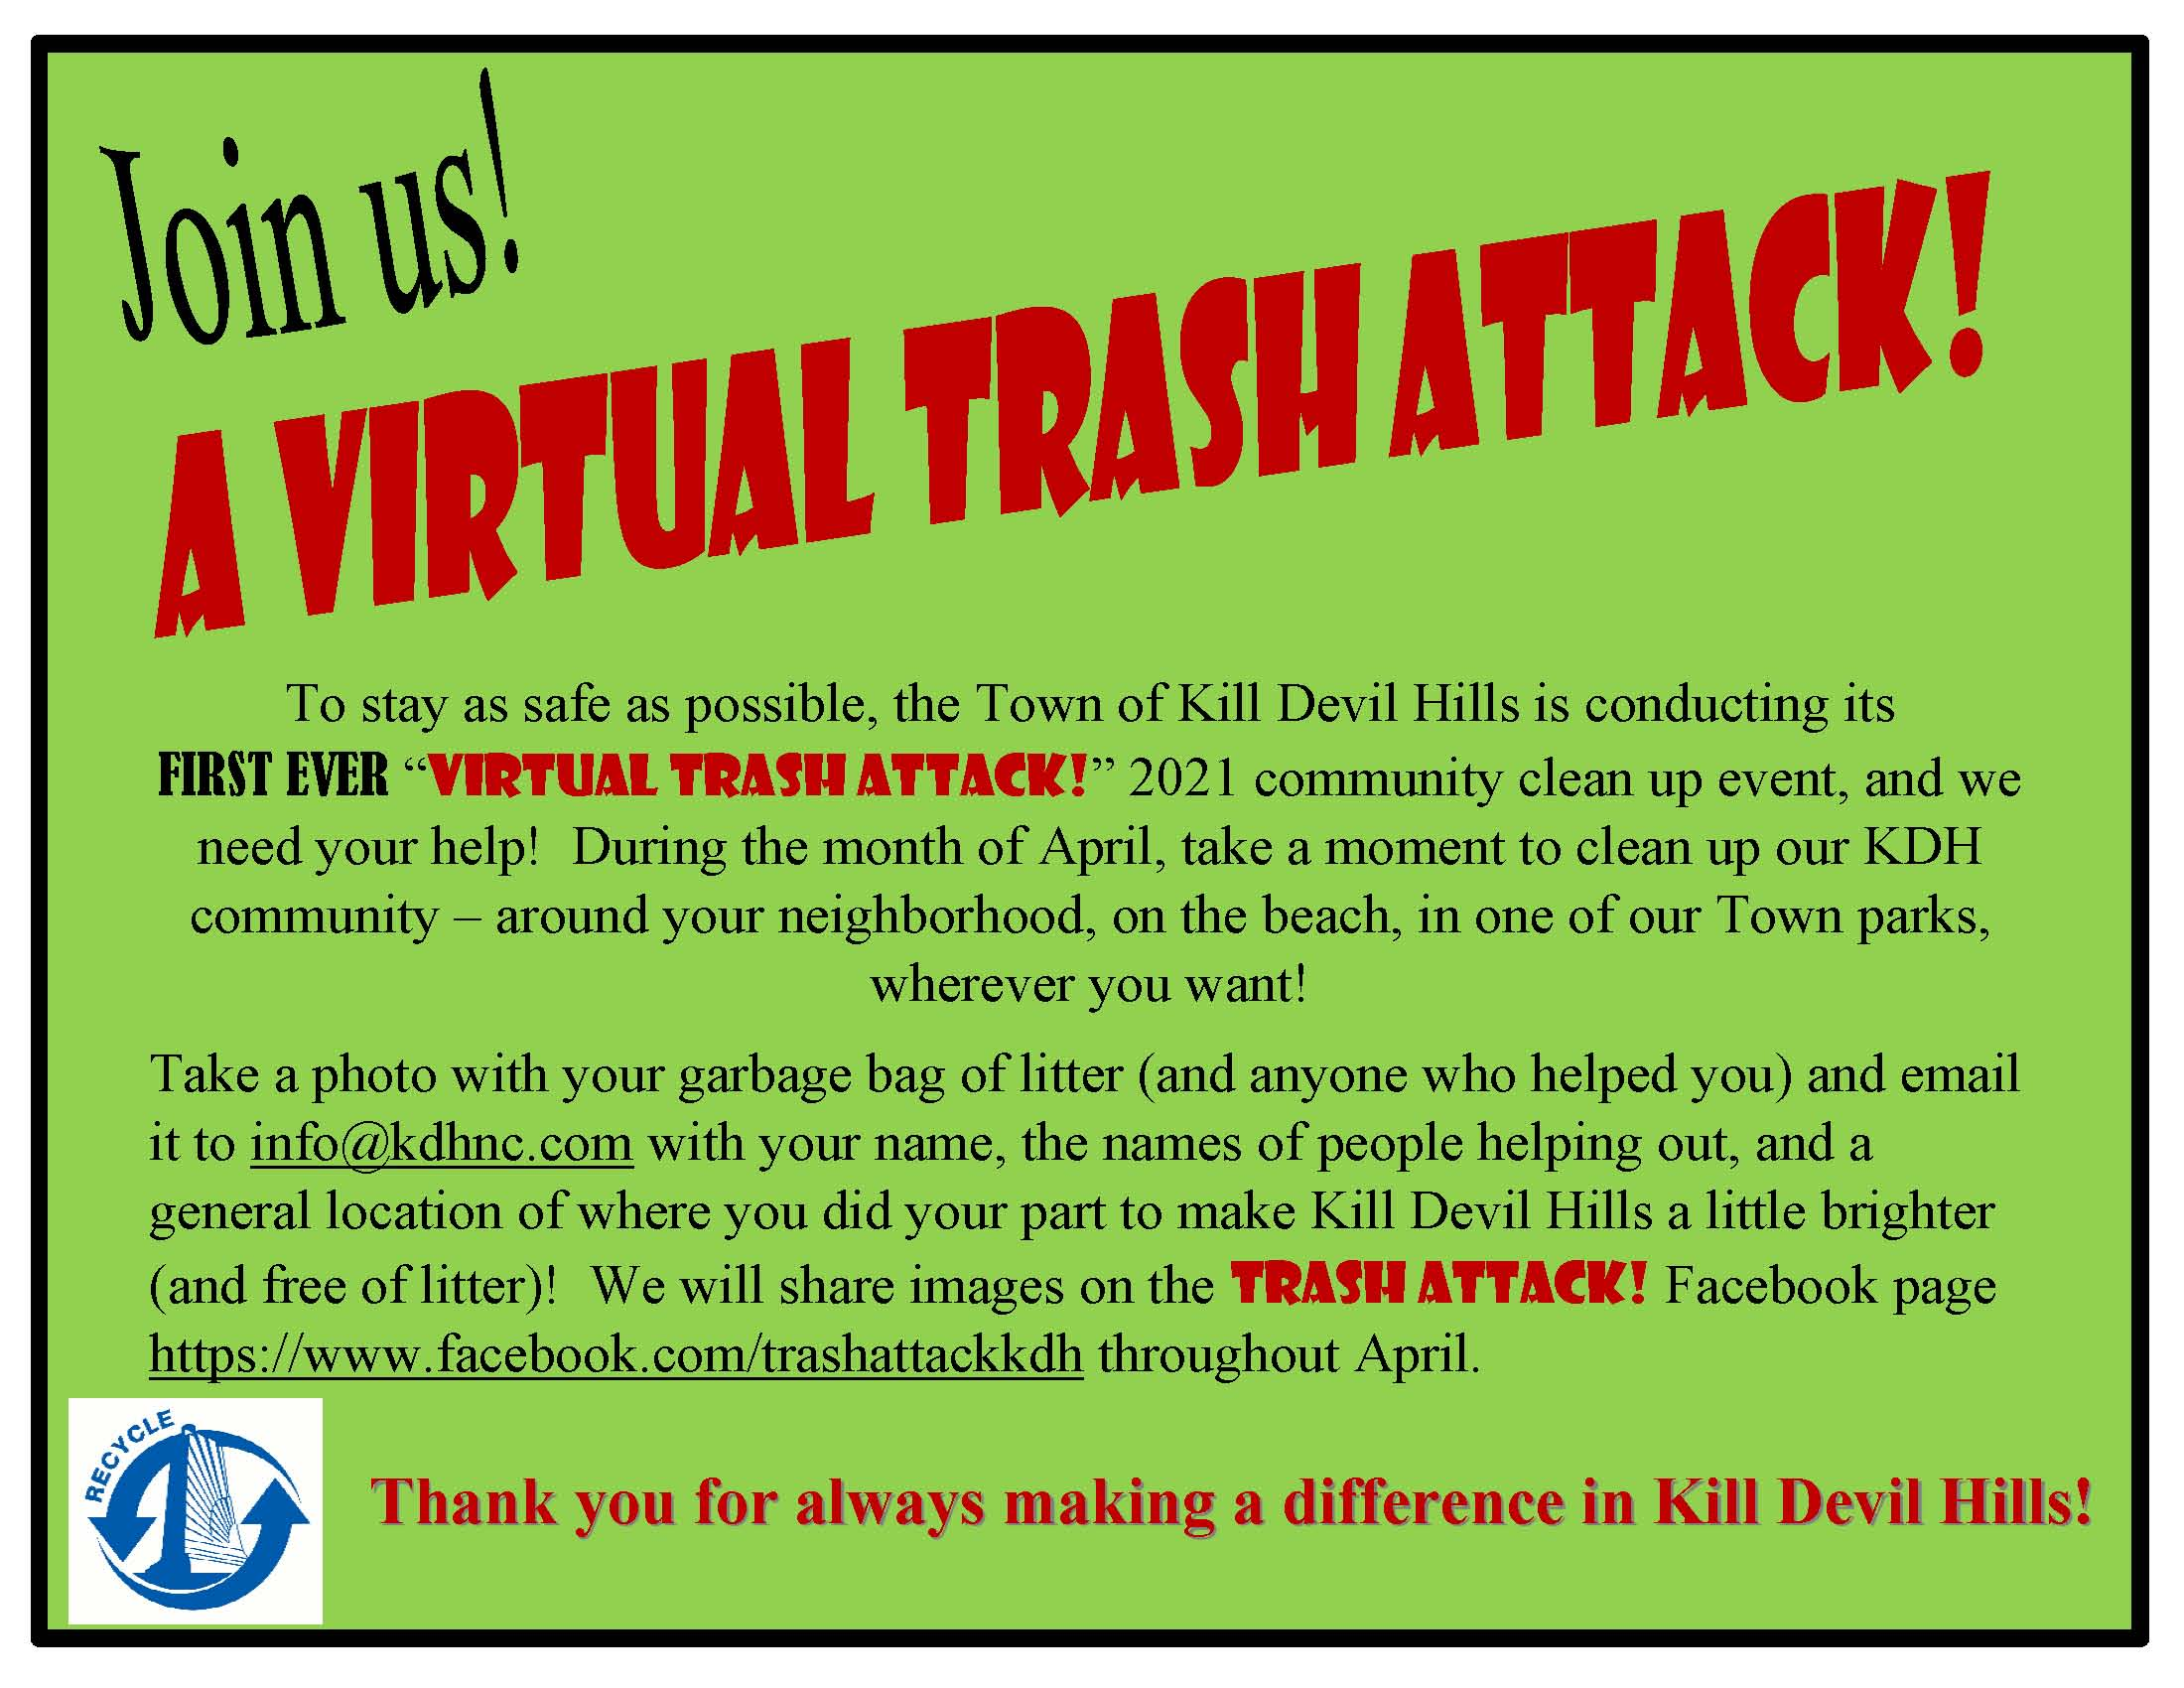 2021 Virtual Trash Attack Flyer